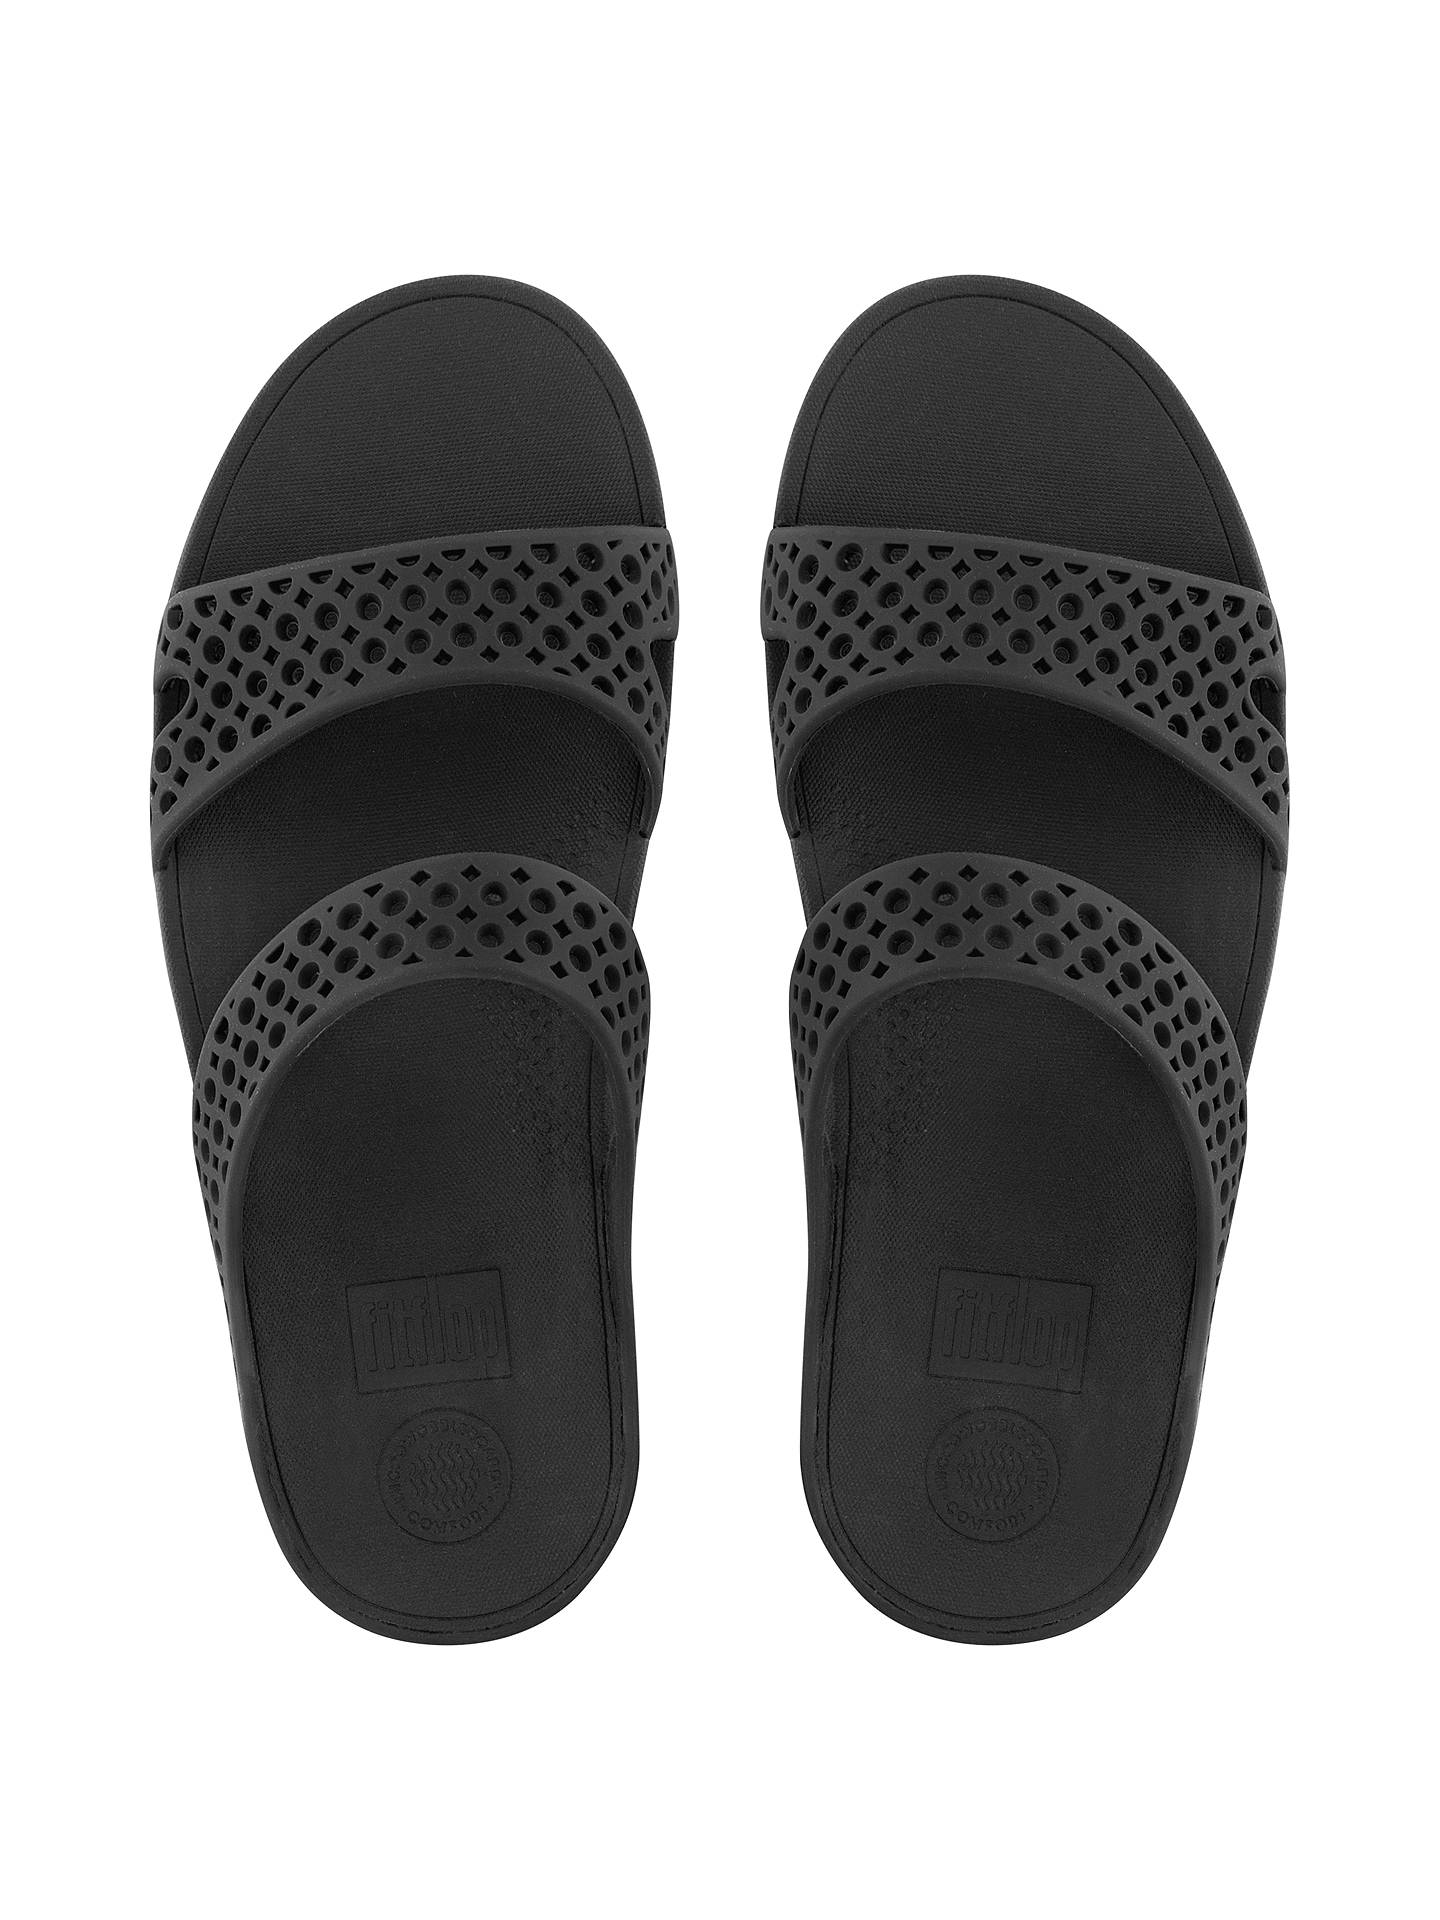 780c76bc4f3772 Buy FitFlop Ringer WellJelly Z-Slide Sandals